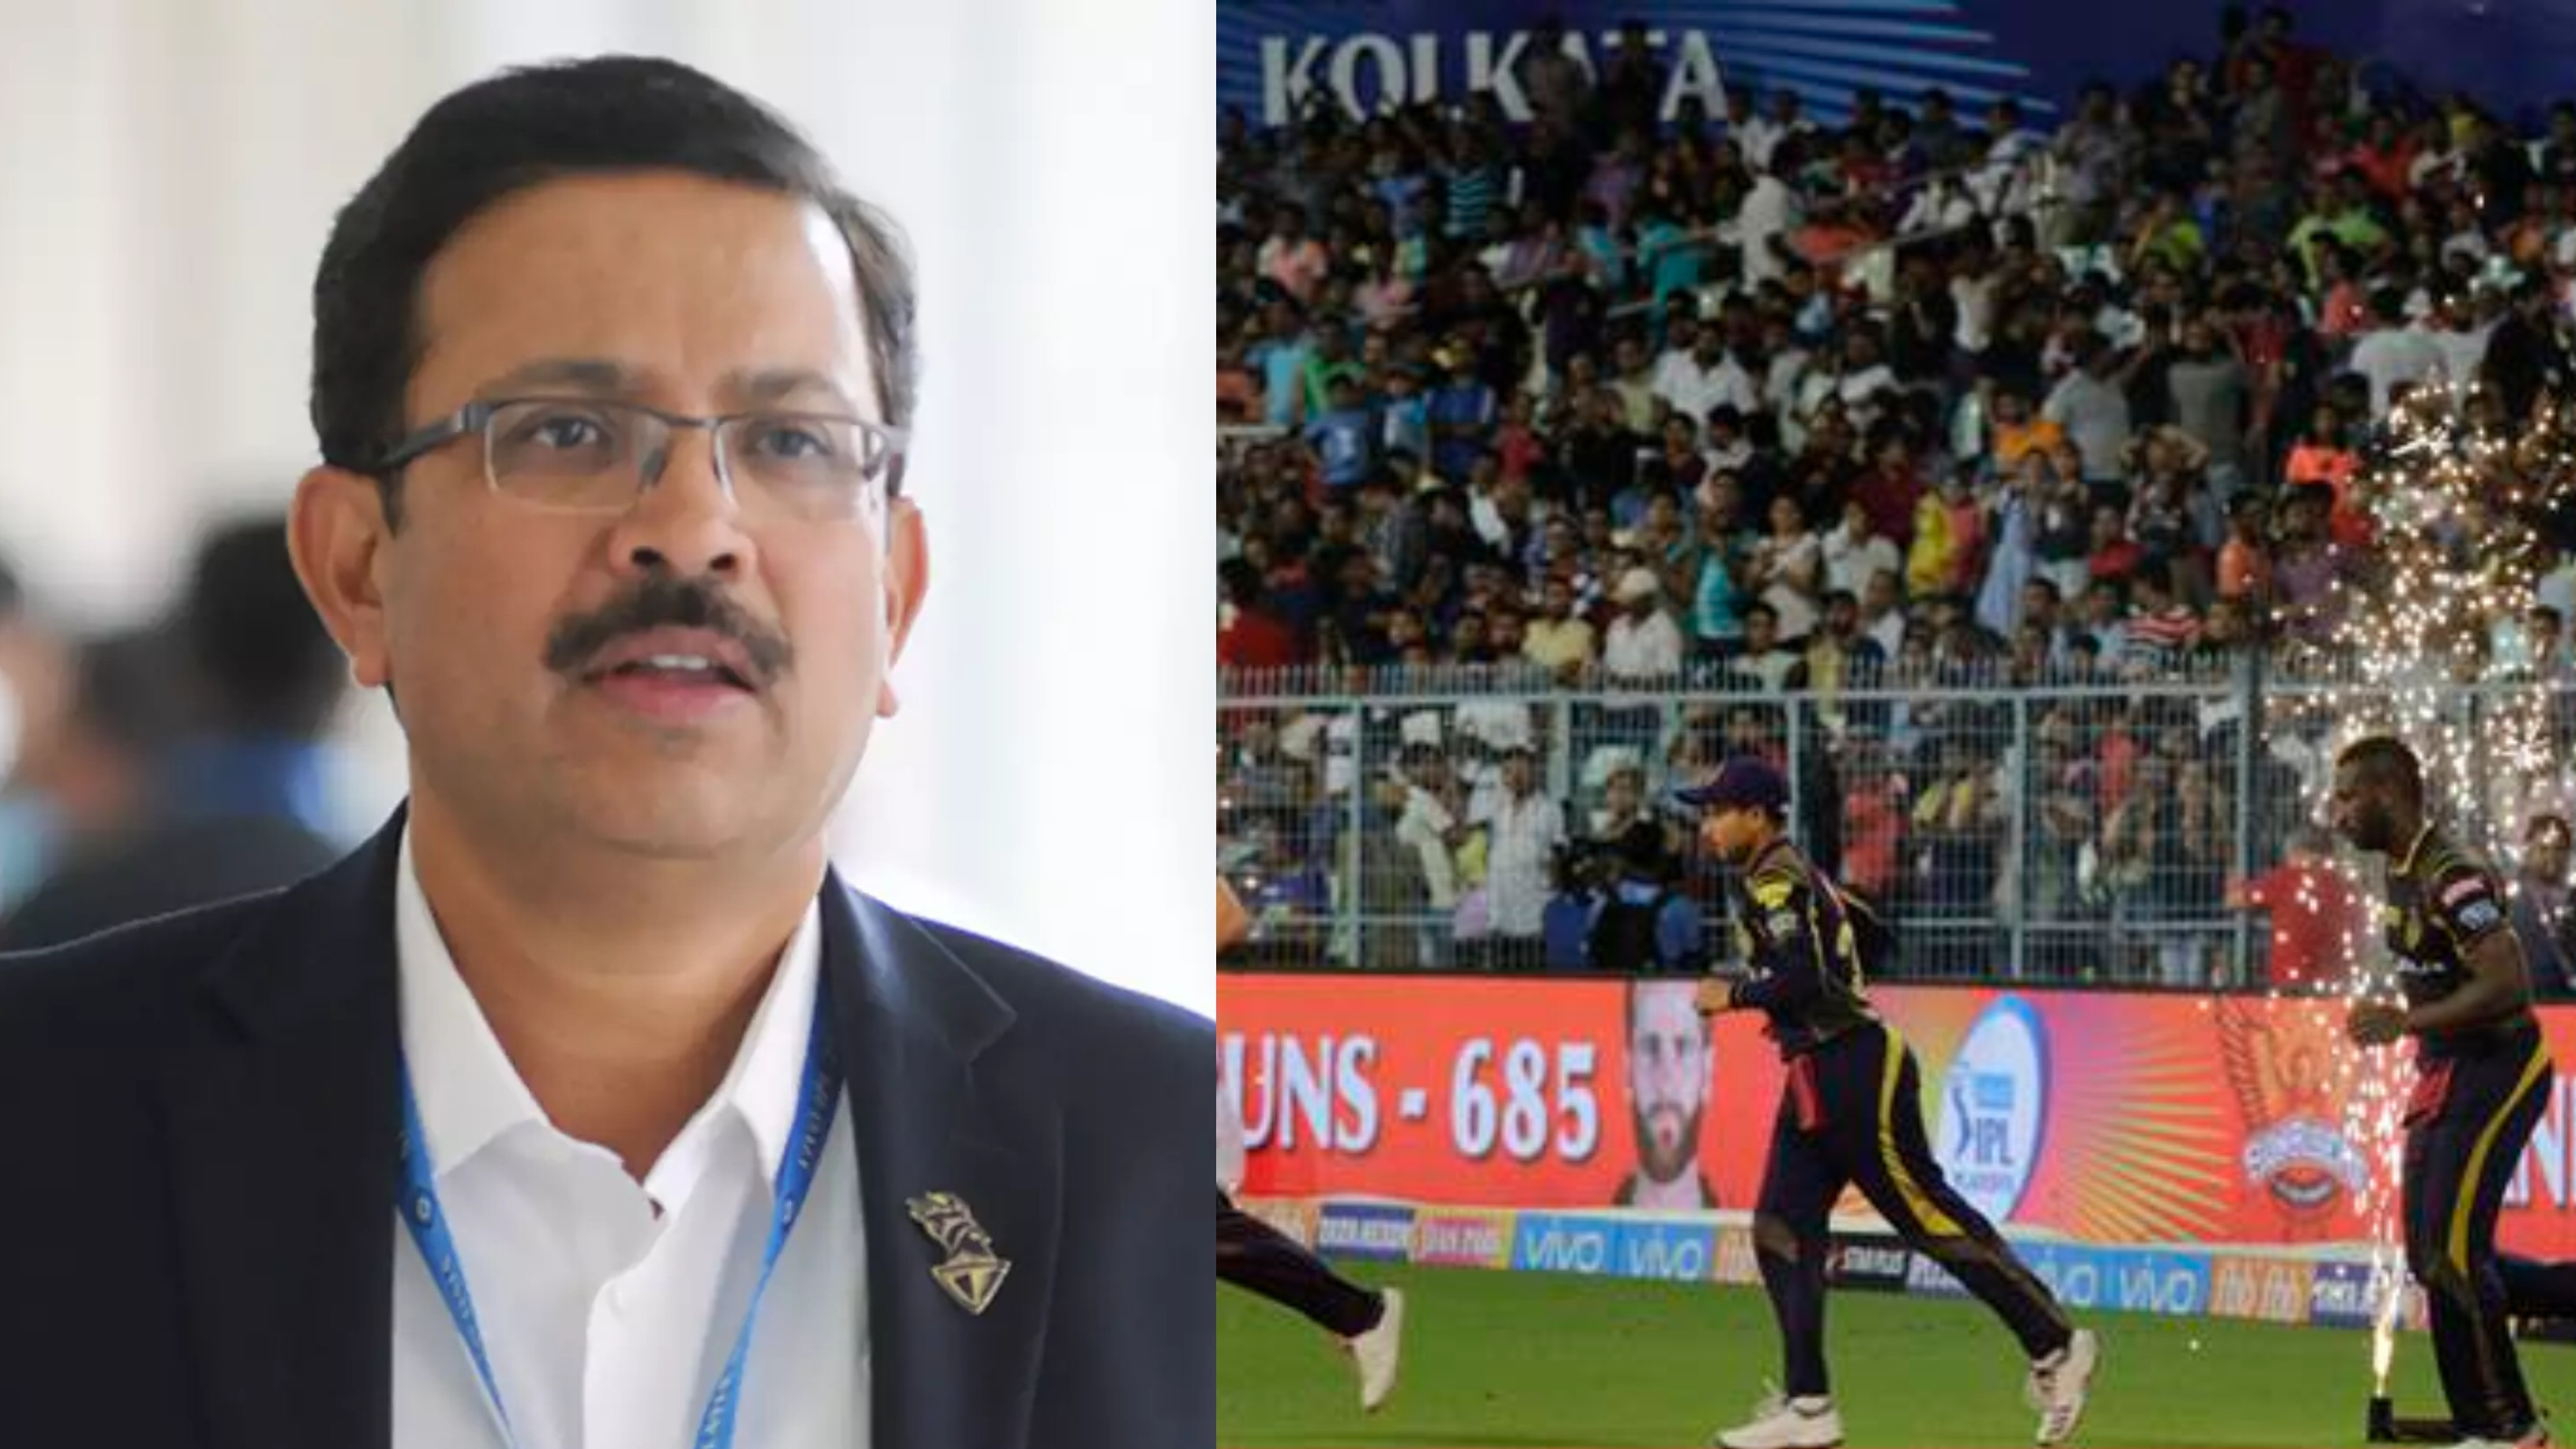 IPL 2019: Hoping to play maximum home games at Eden Gardens, says KKR CEO Venky Mysore